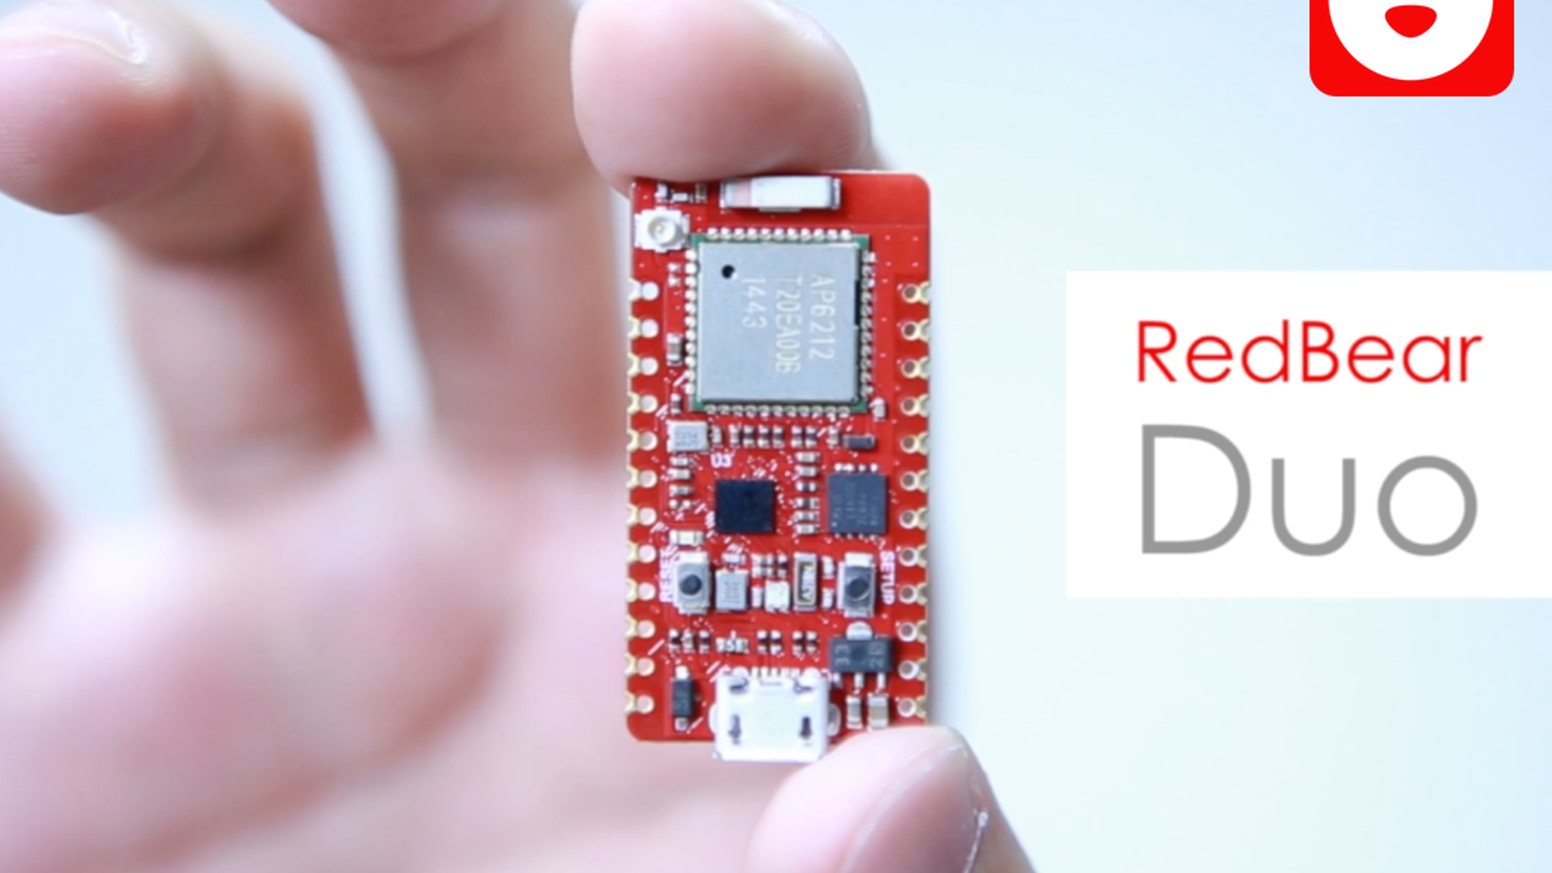 RedBear Duo: A small and powerful Wi-Fi + BLE IoT board by RedBear